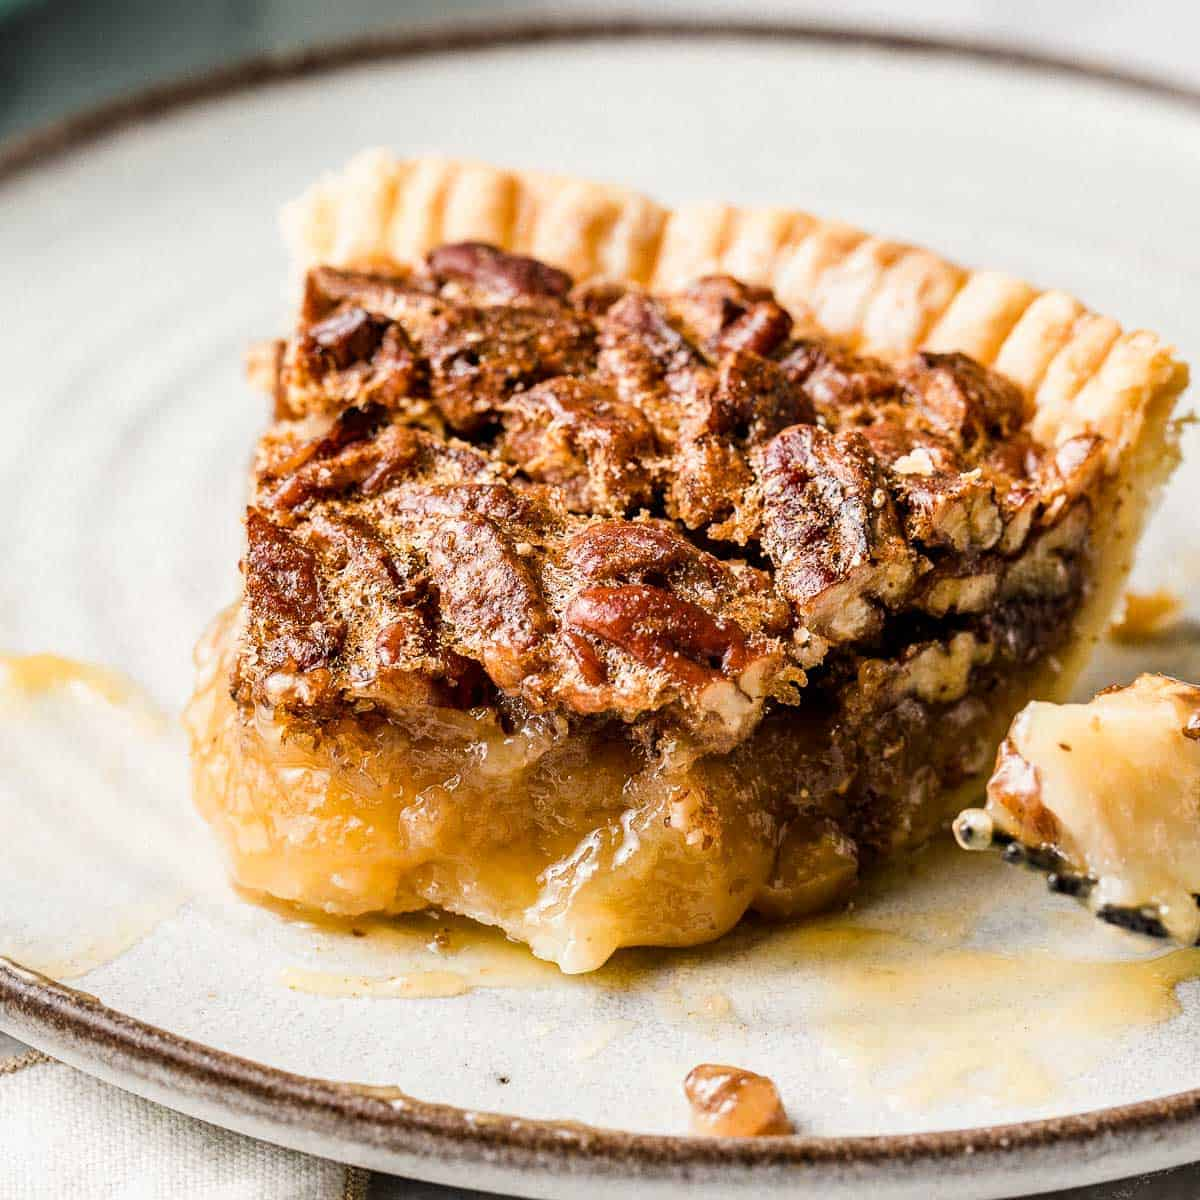 A slice of pecan pie on a plate.